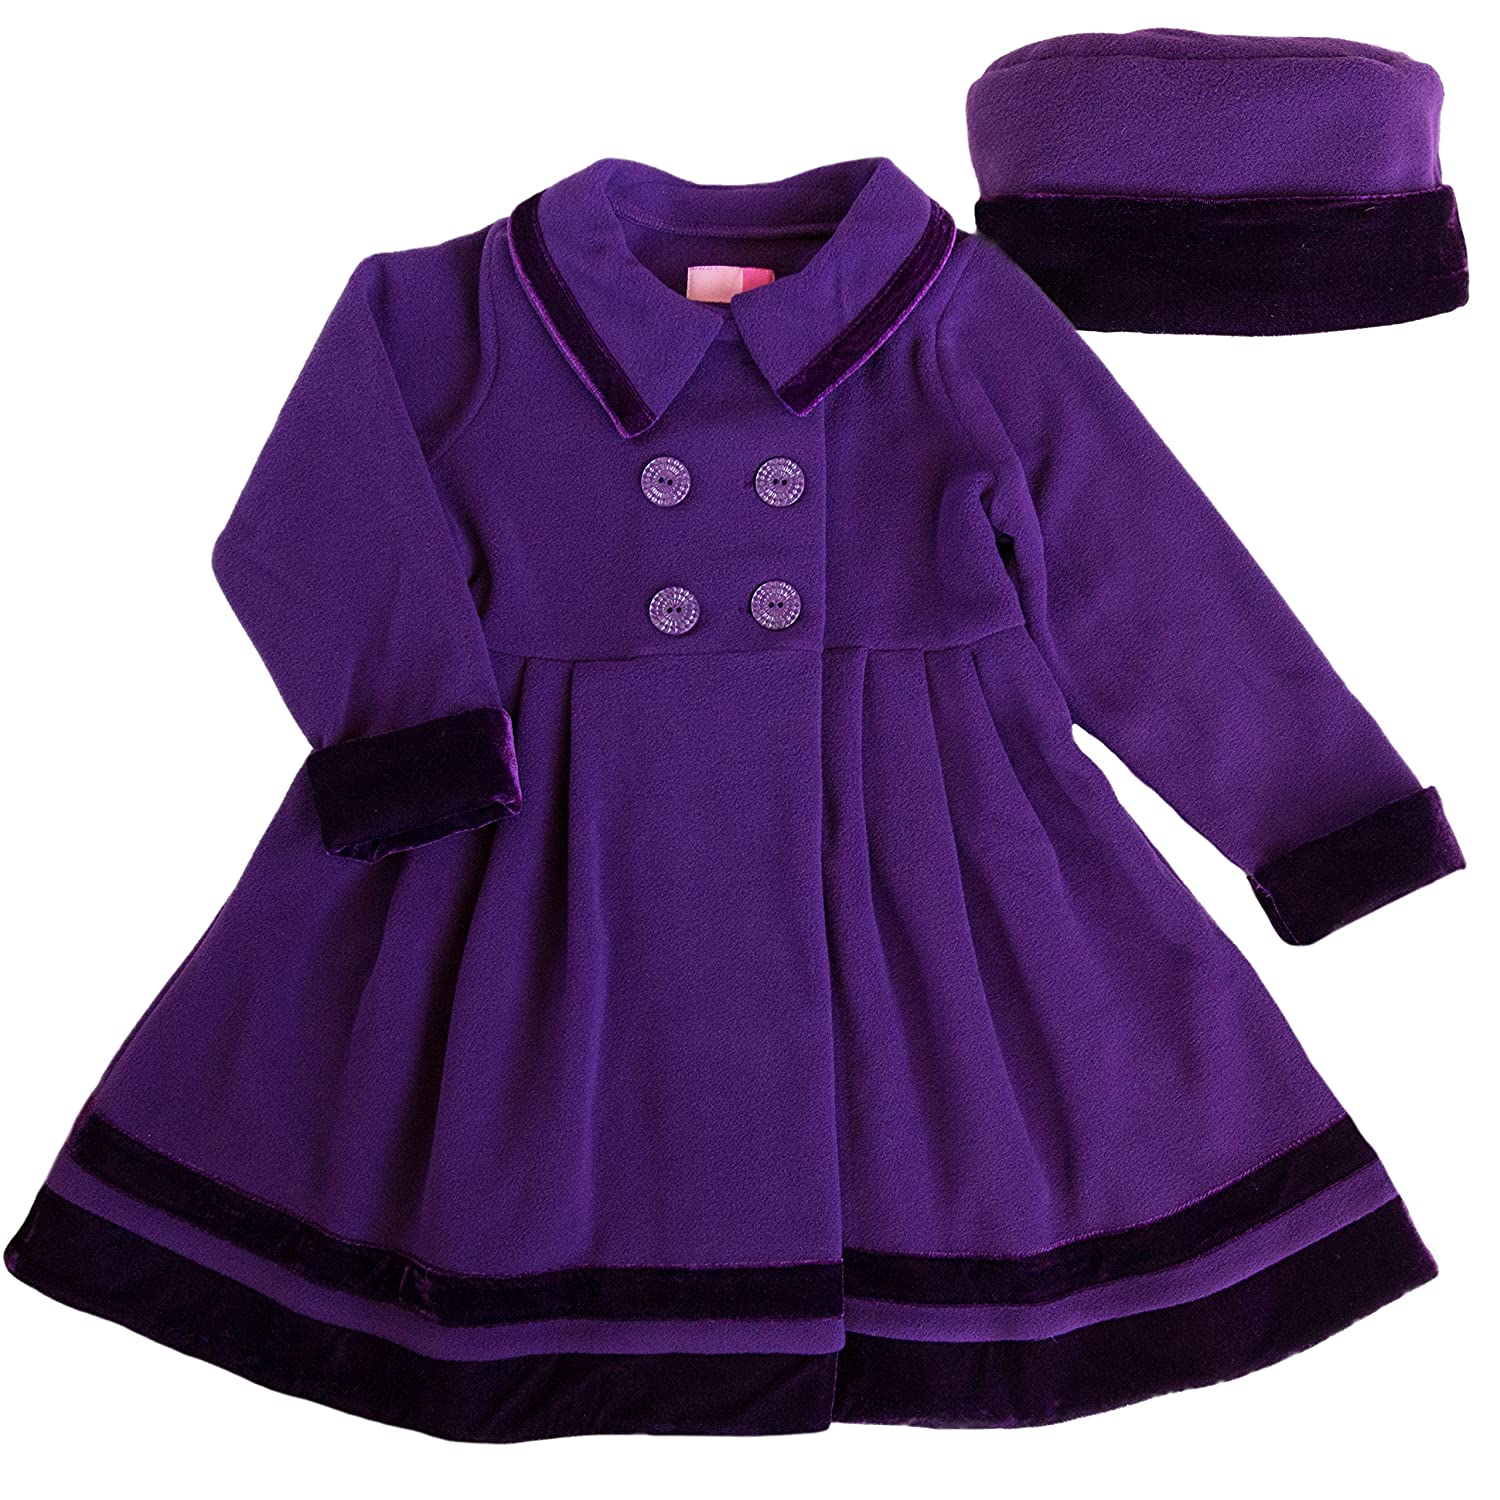 ad1609fbd Amazon.com  Good Lad 2 6X Girls Double Breasted Jewel Tone Fleece ...